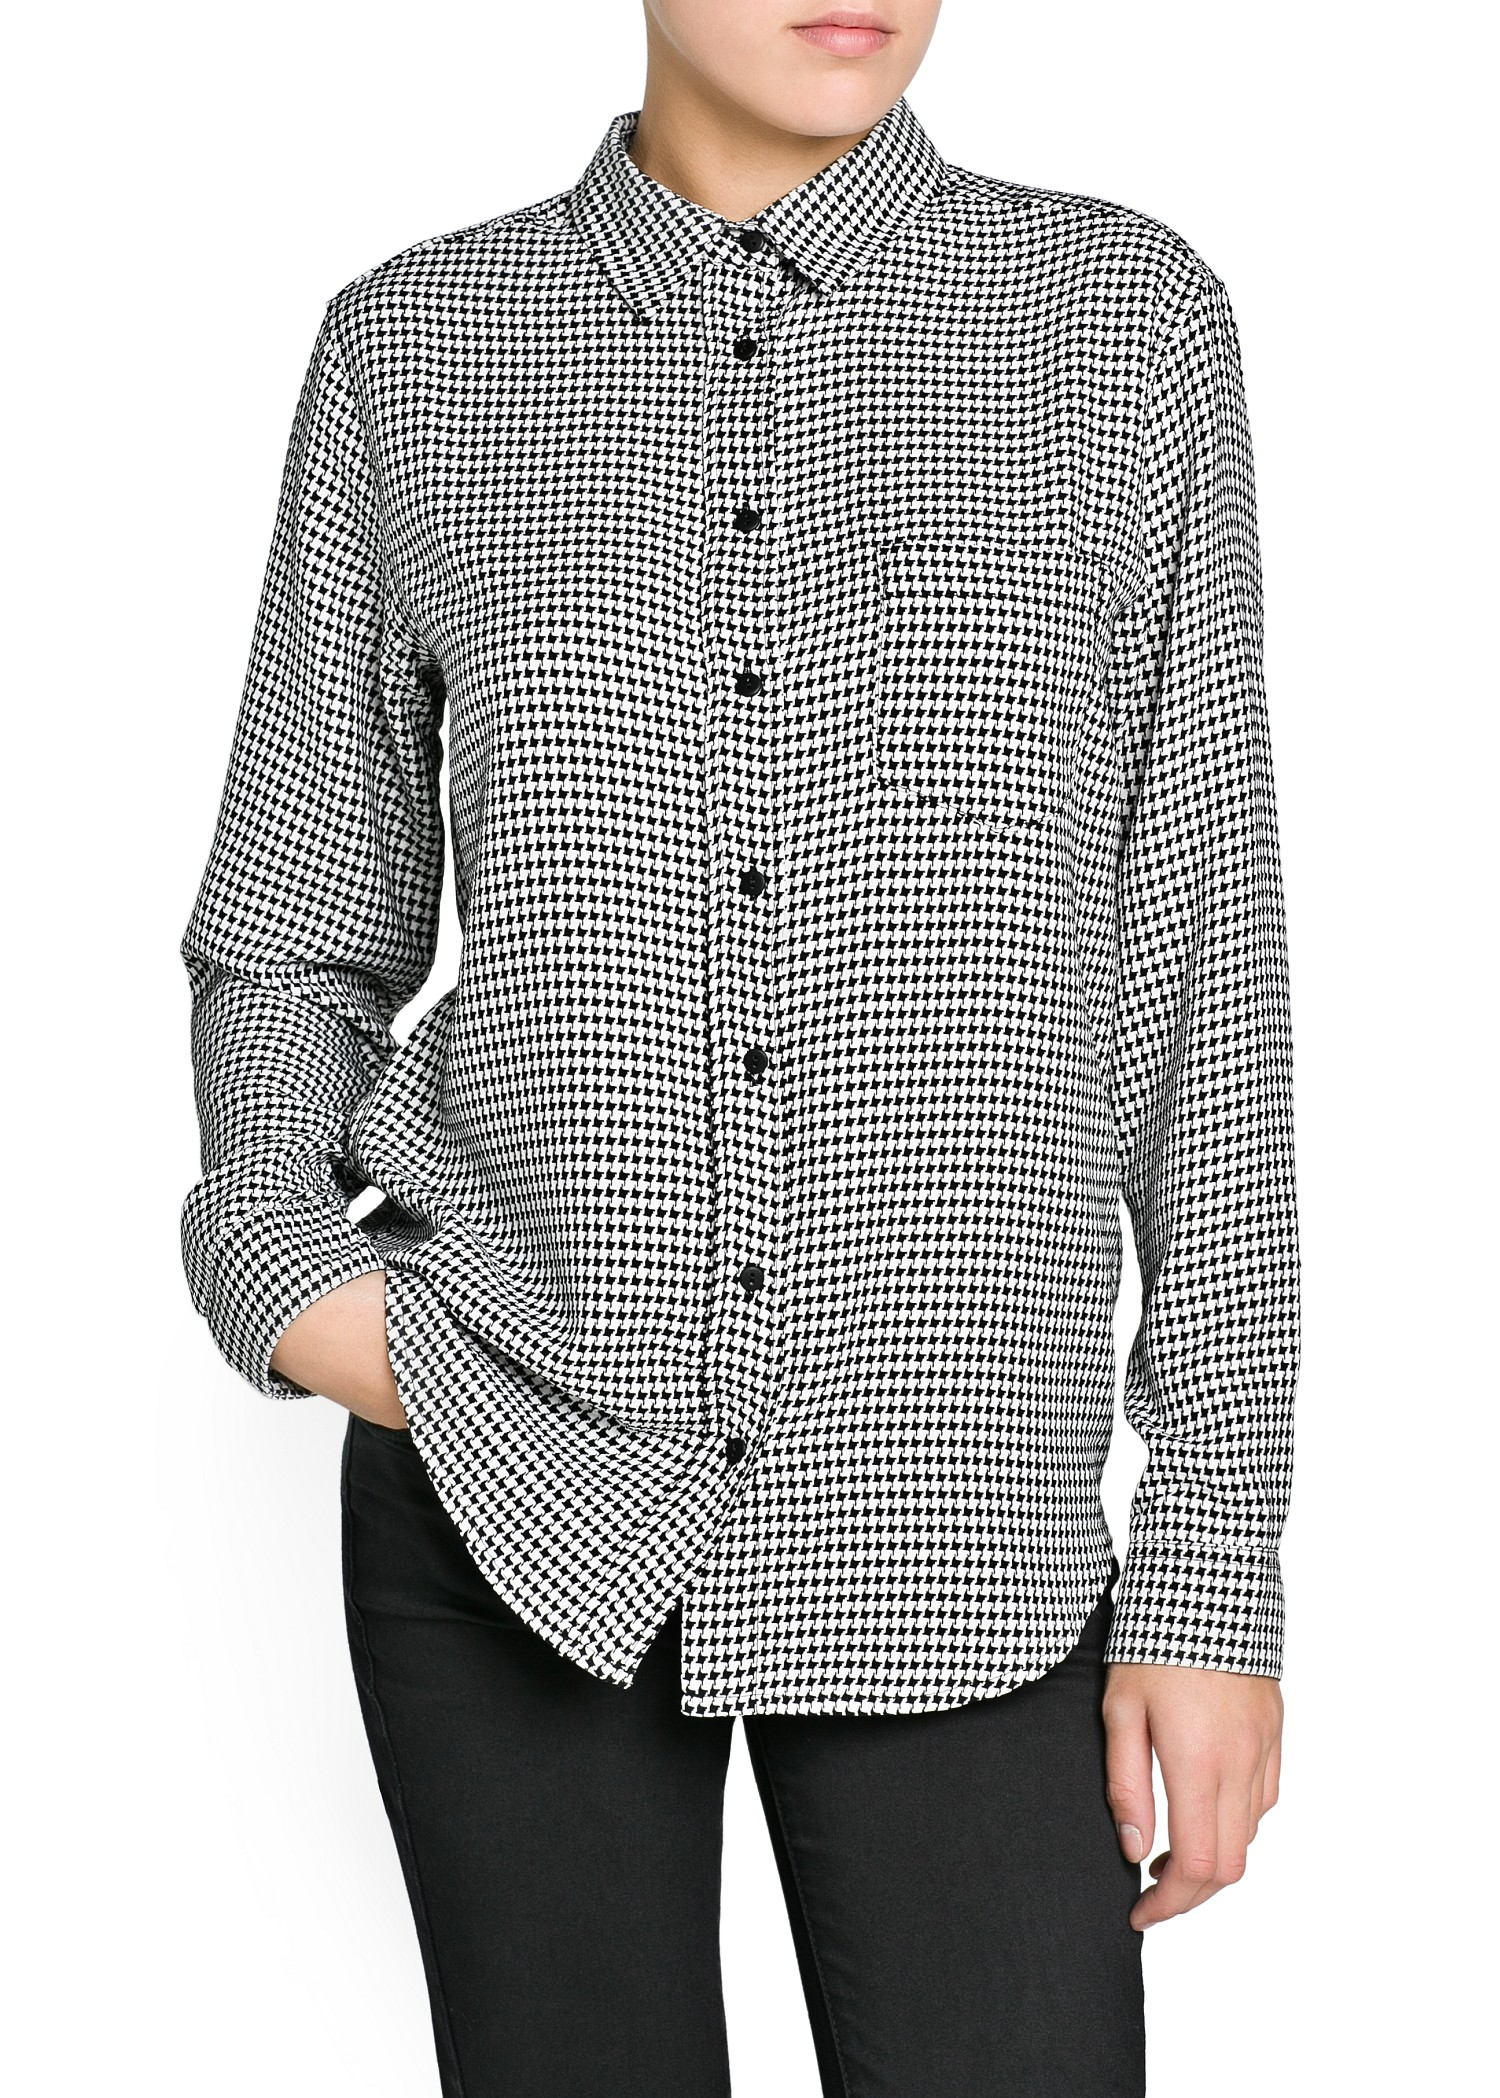 Mango Houndstooth Shirt In Black Lyst